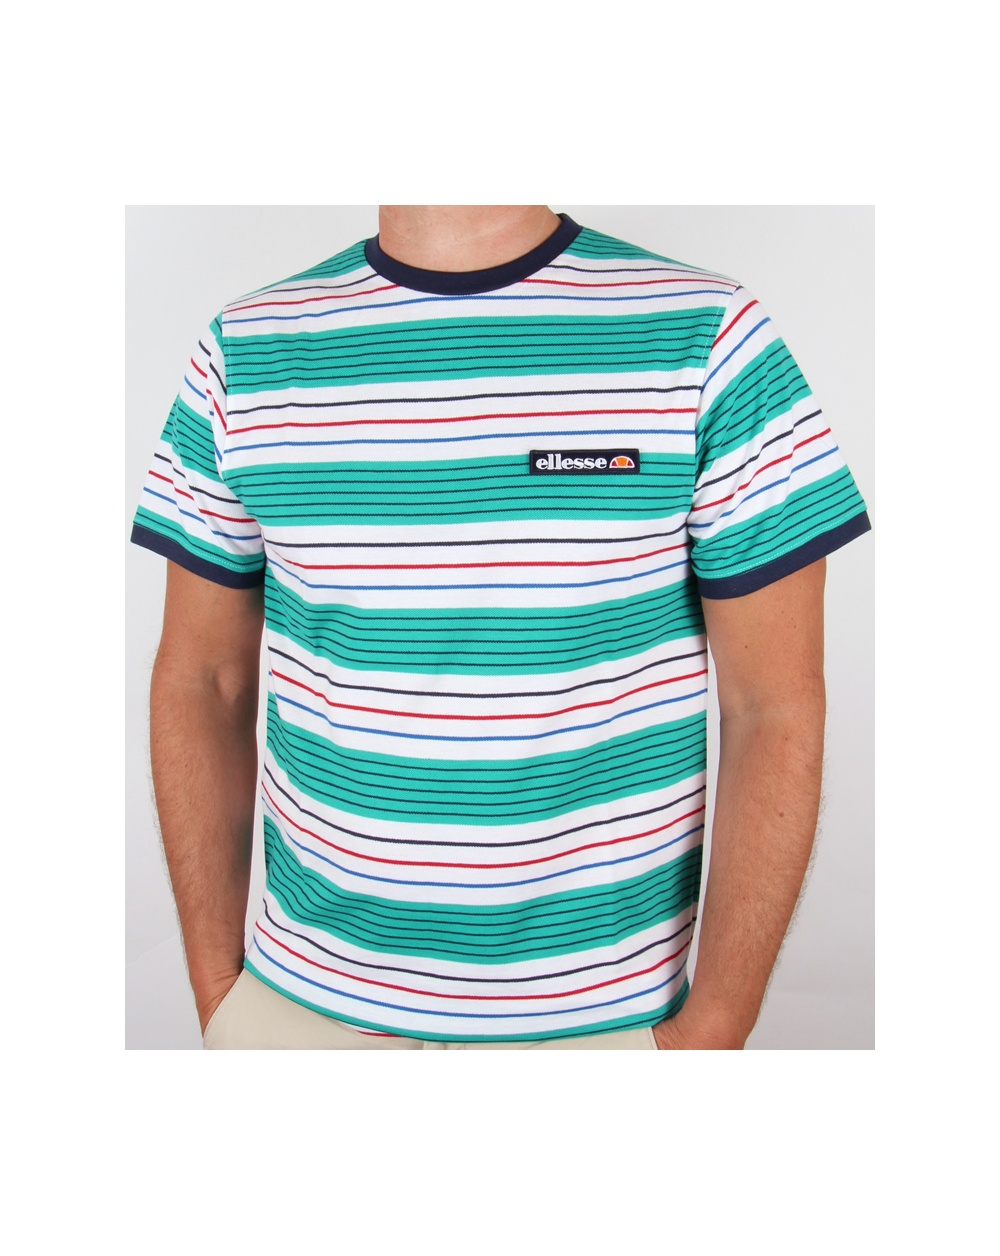 Ellesse cabassa striped t shirt green stripe tee mens